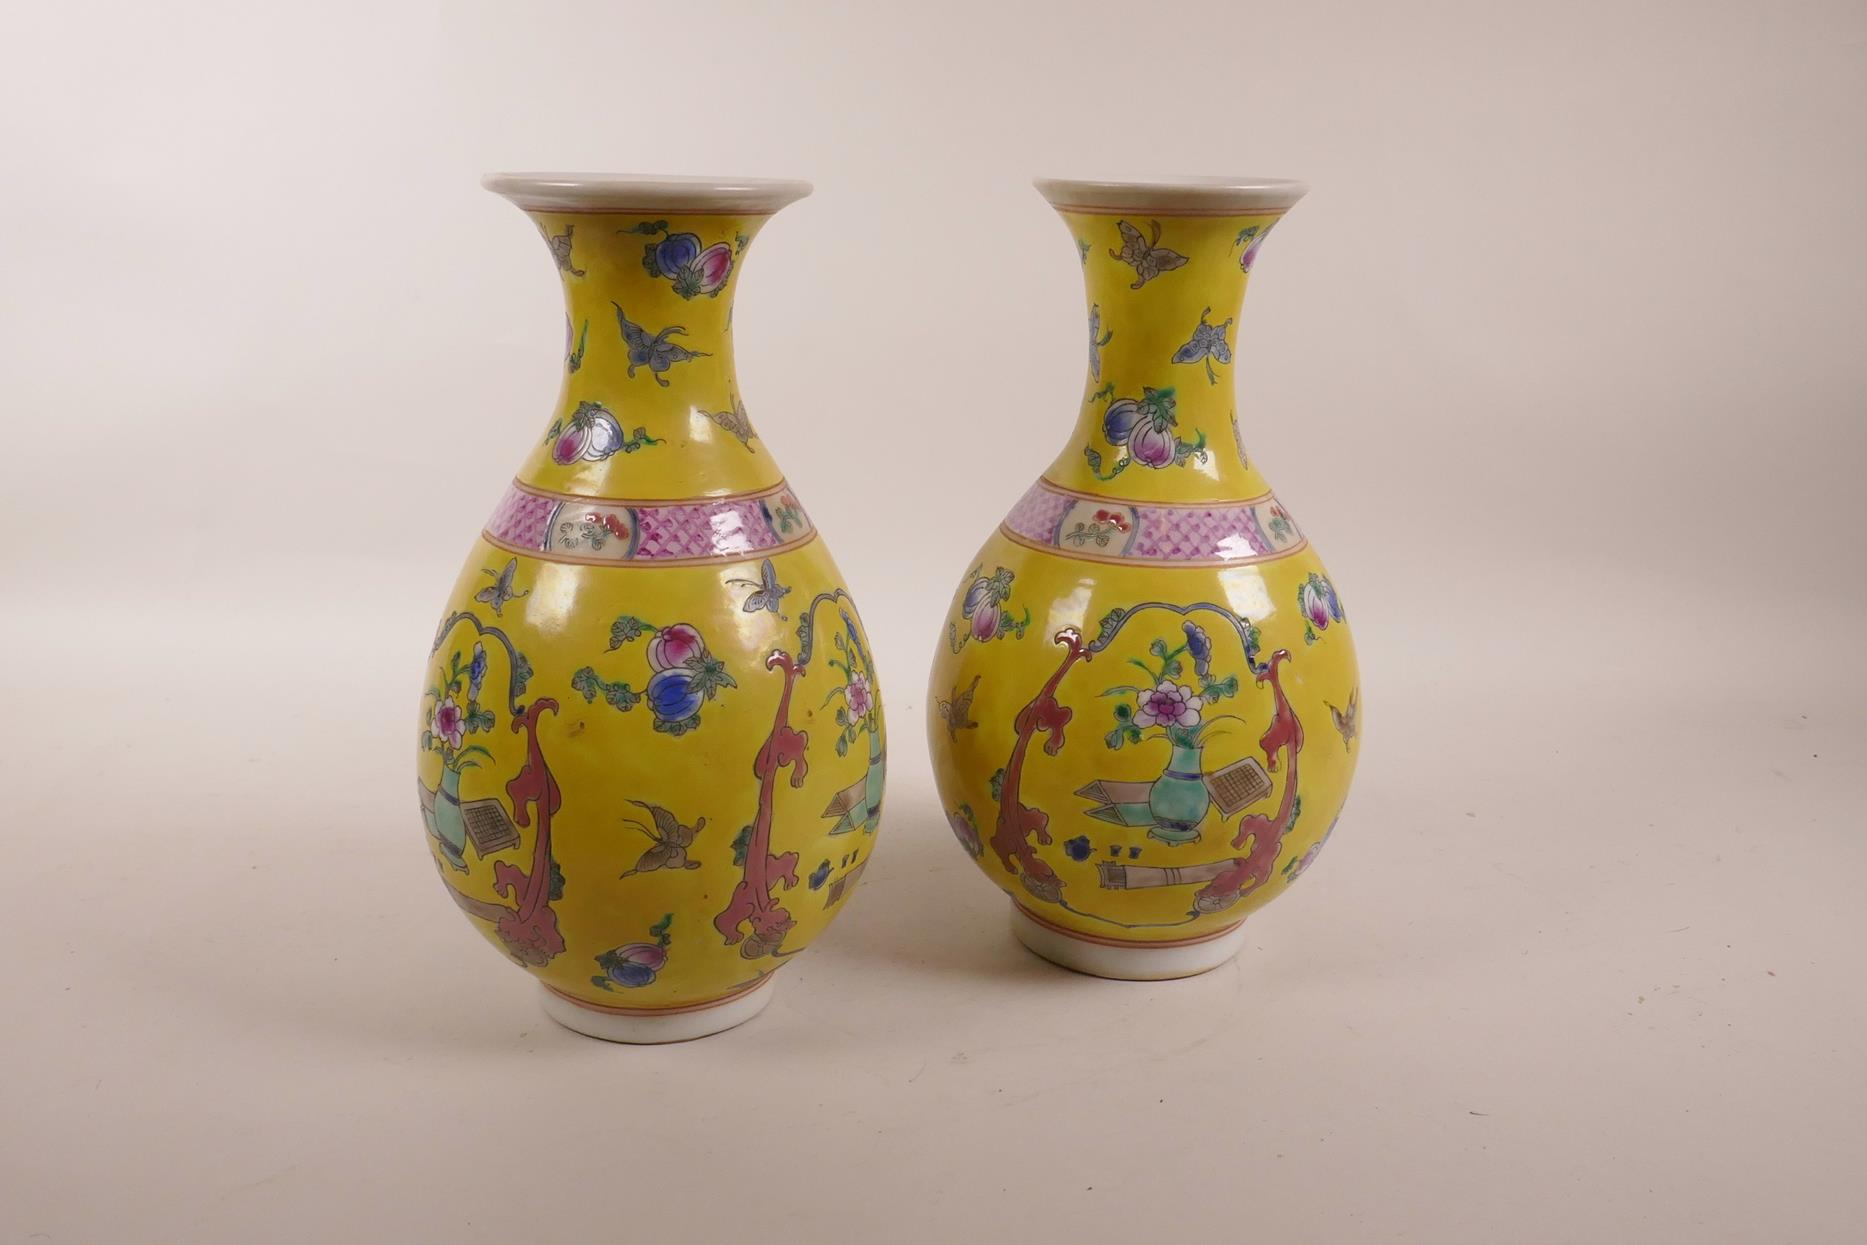 Lot 83 - A pair of Chinese yellow ground porcelain pear shaped vases decorated in polychrome enamels